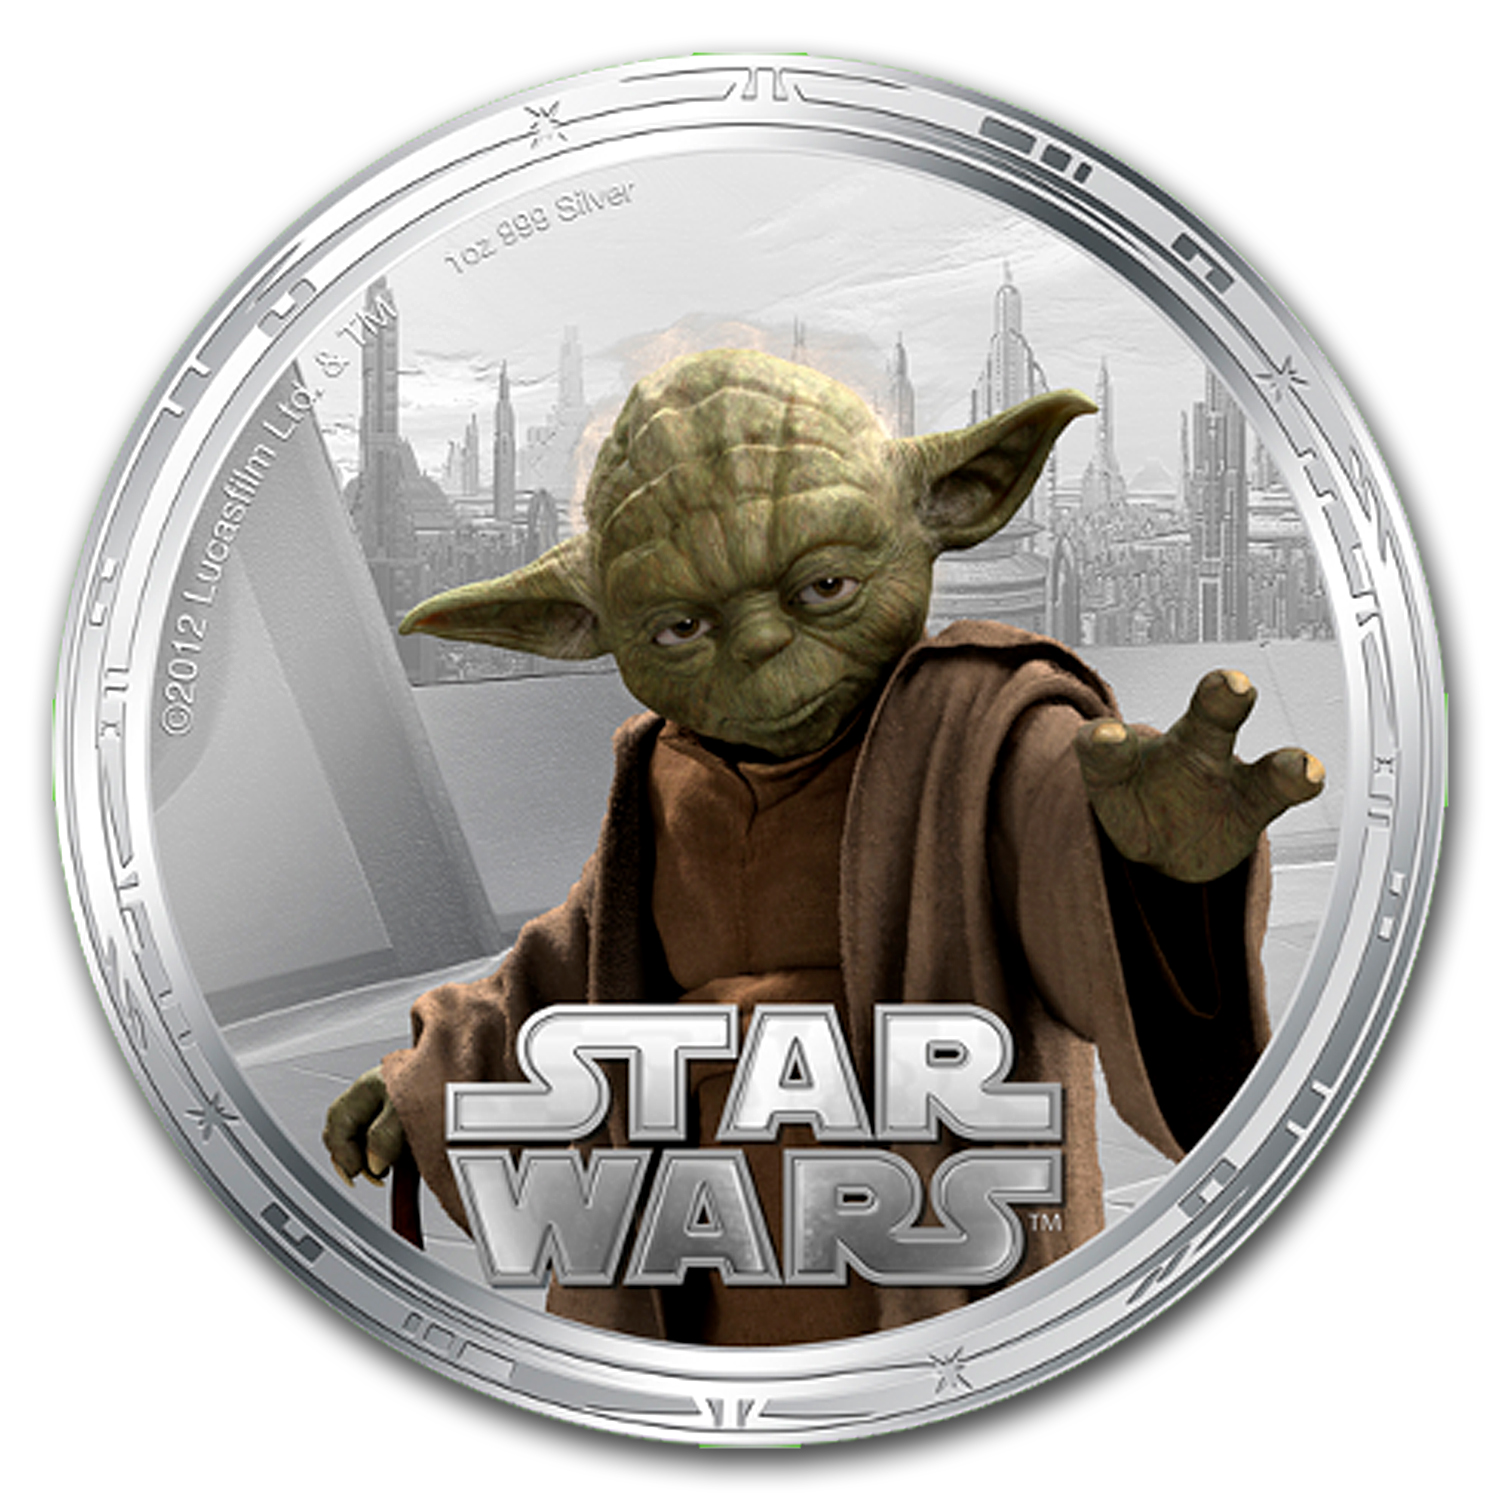 2012 Star Wars 2nd Series Coin Set 4 x Silver & 4 x Gold Plated